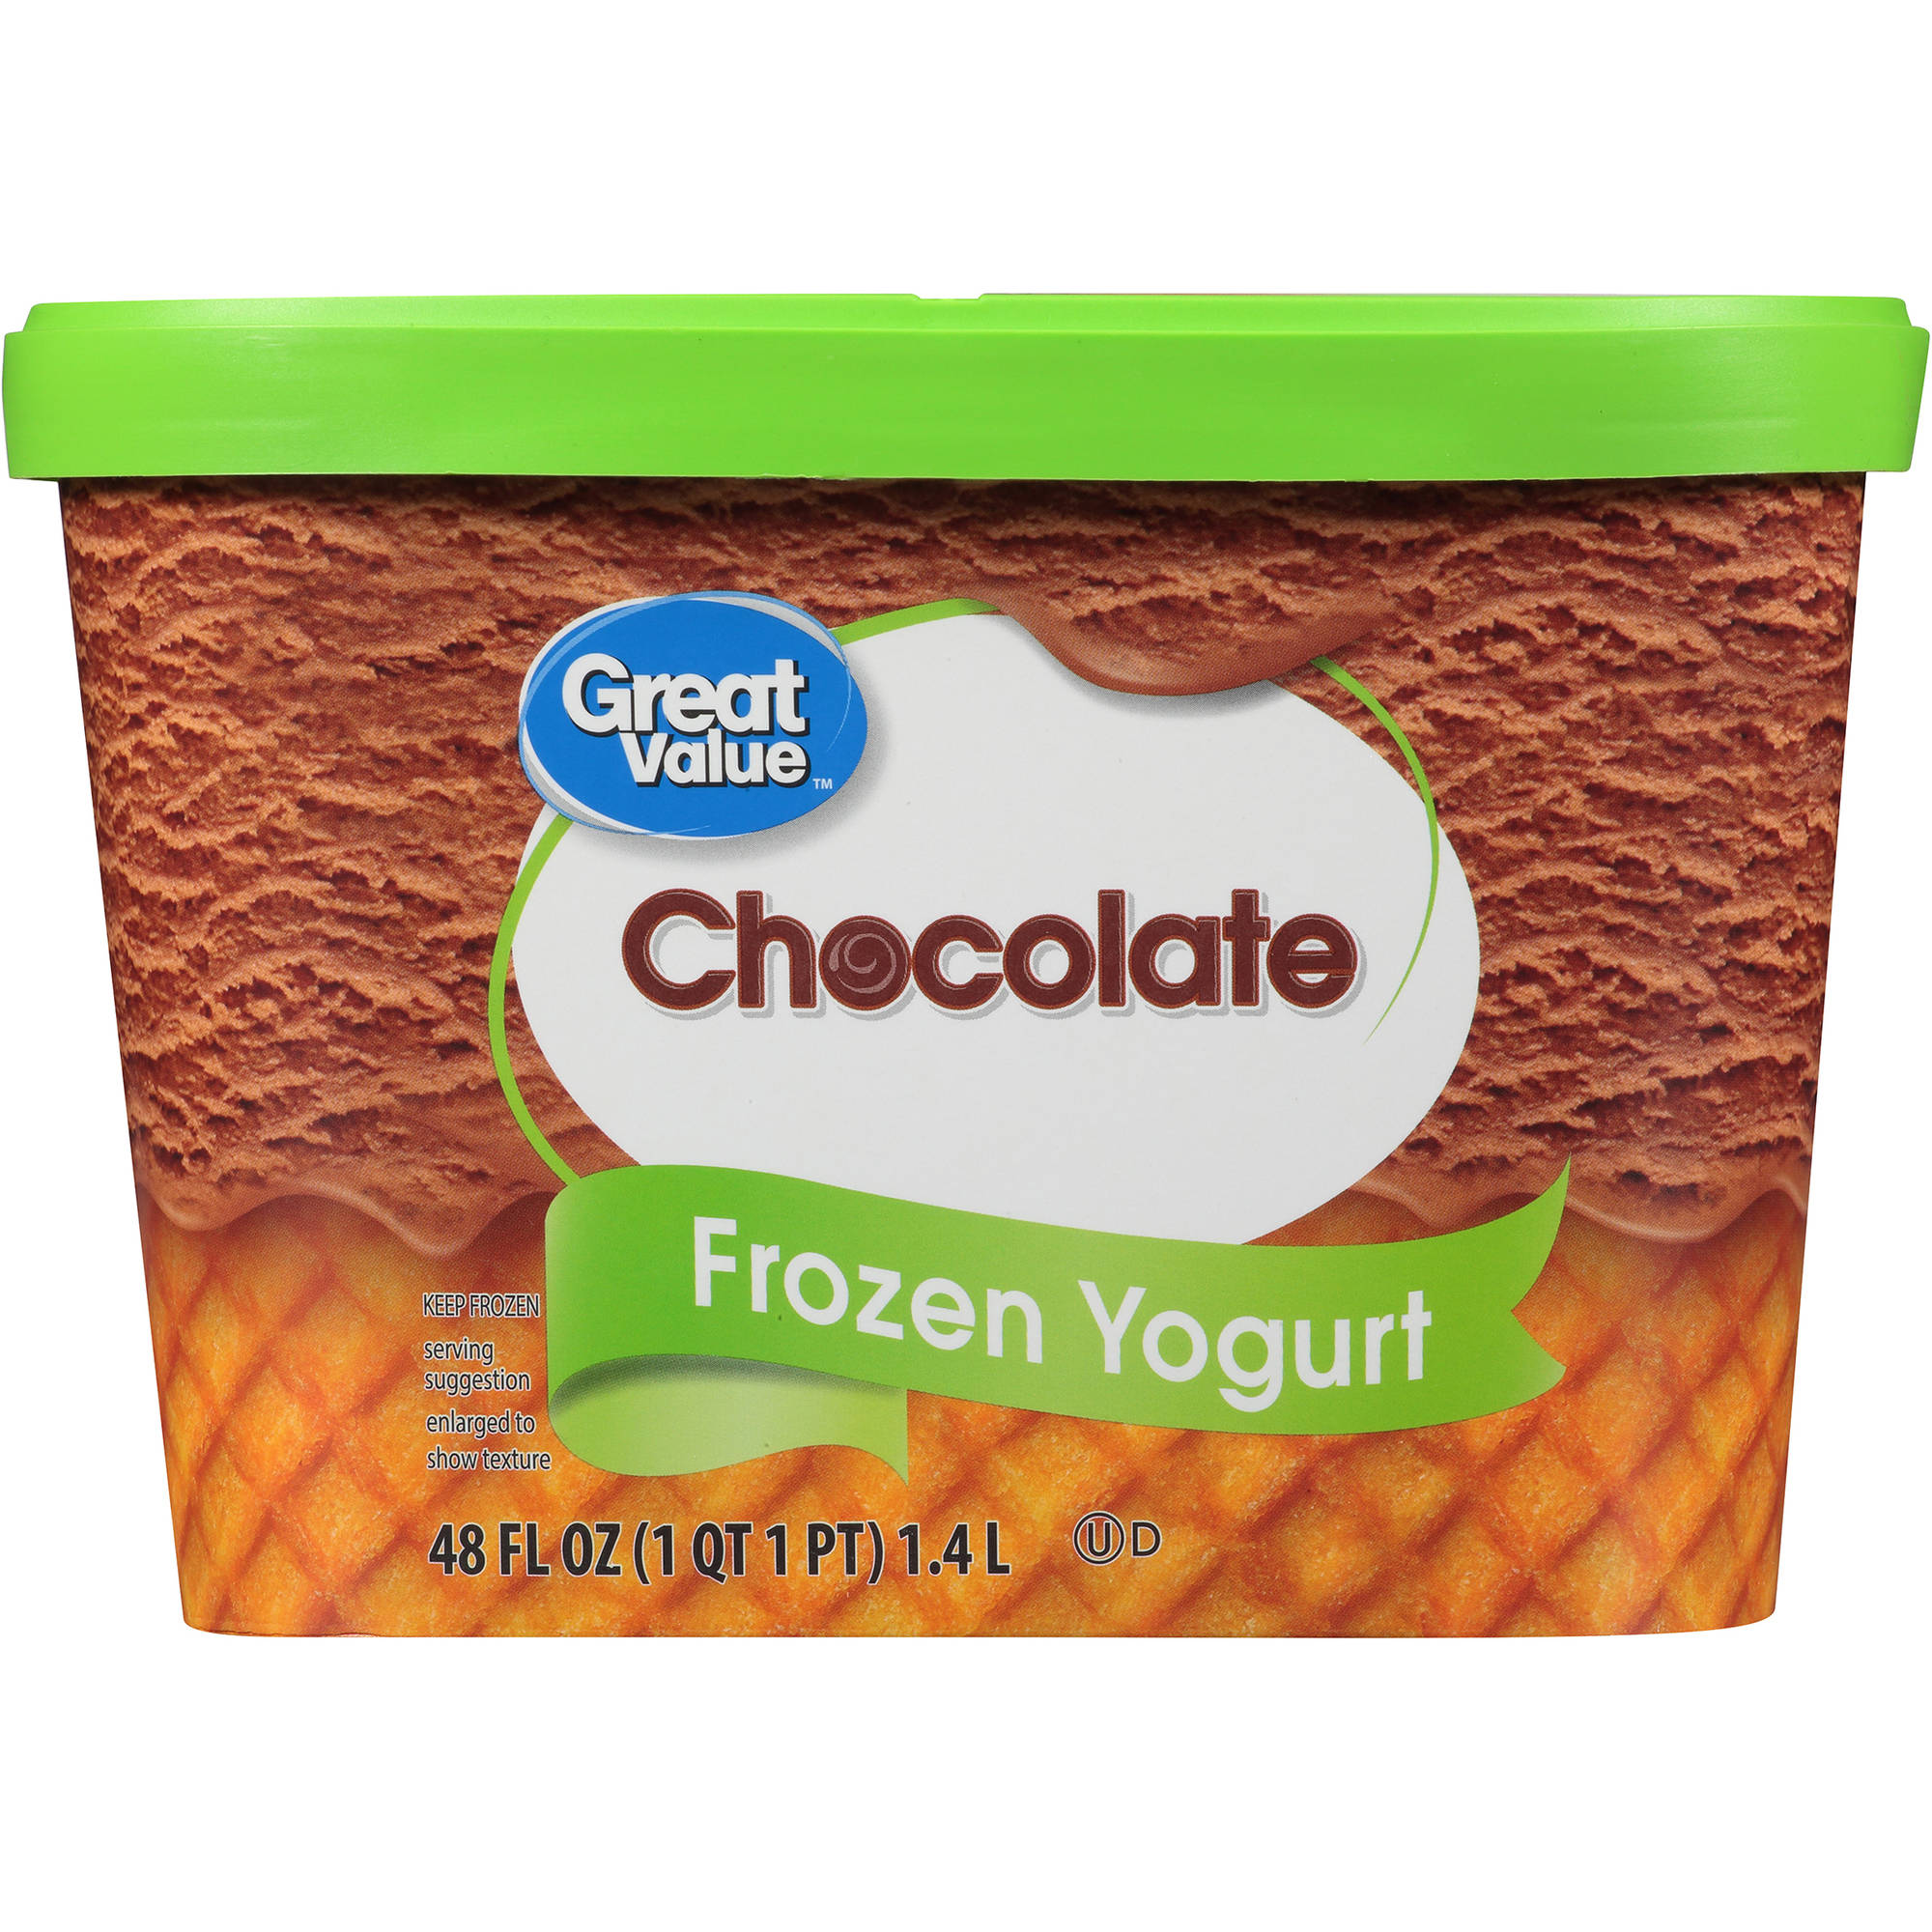 Great Value Chocolate Frozen Yogurt, 48 oz